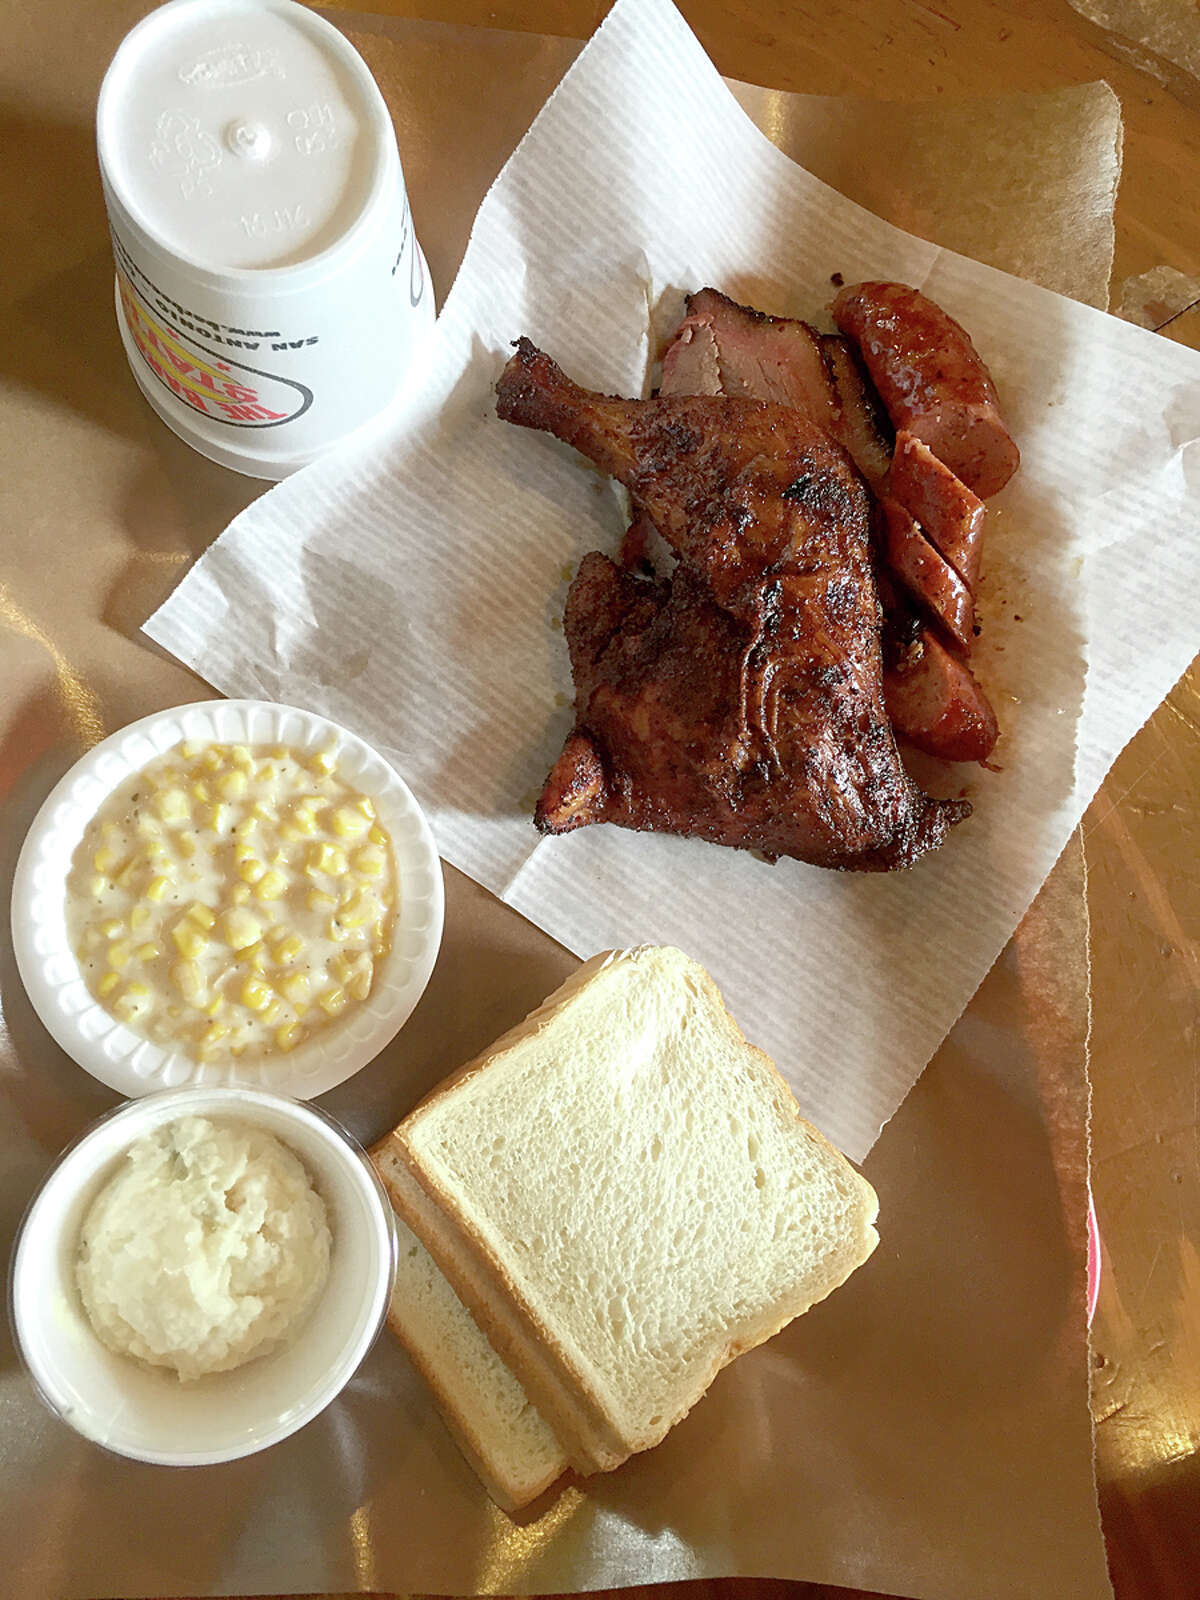 It was a gas station 24 years ago, now the Barbecue Station is one of San Antonio's favorite places to get delicious barbecue. It was the Express-News Reader's Choice Award Winner in 2013 and 2014 for Best Barbecue and Best Brisket. It's also won 13 Critics Choice Awards for Best Barbecue and Best Ribs. http://www.barbecuestation.com